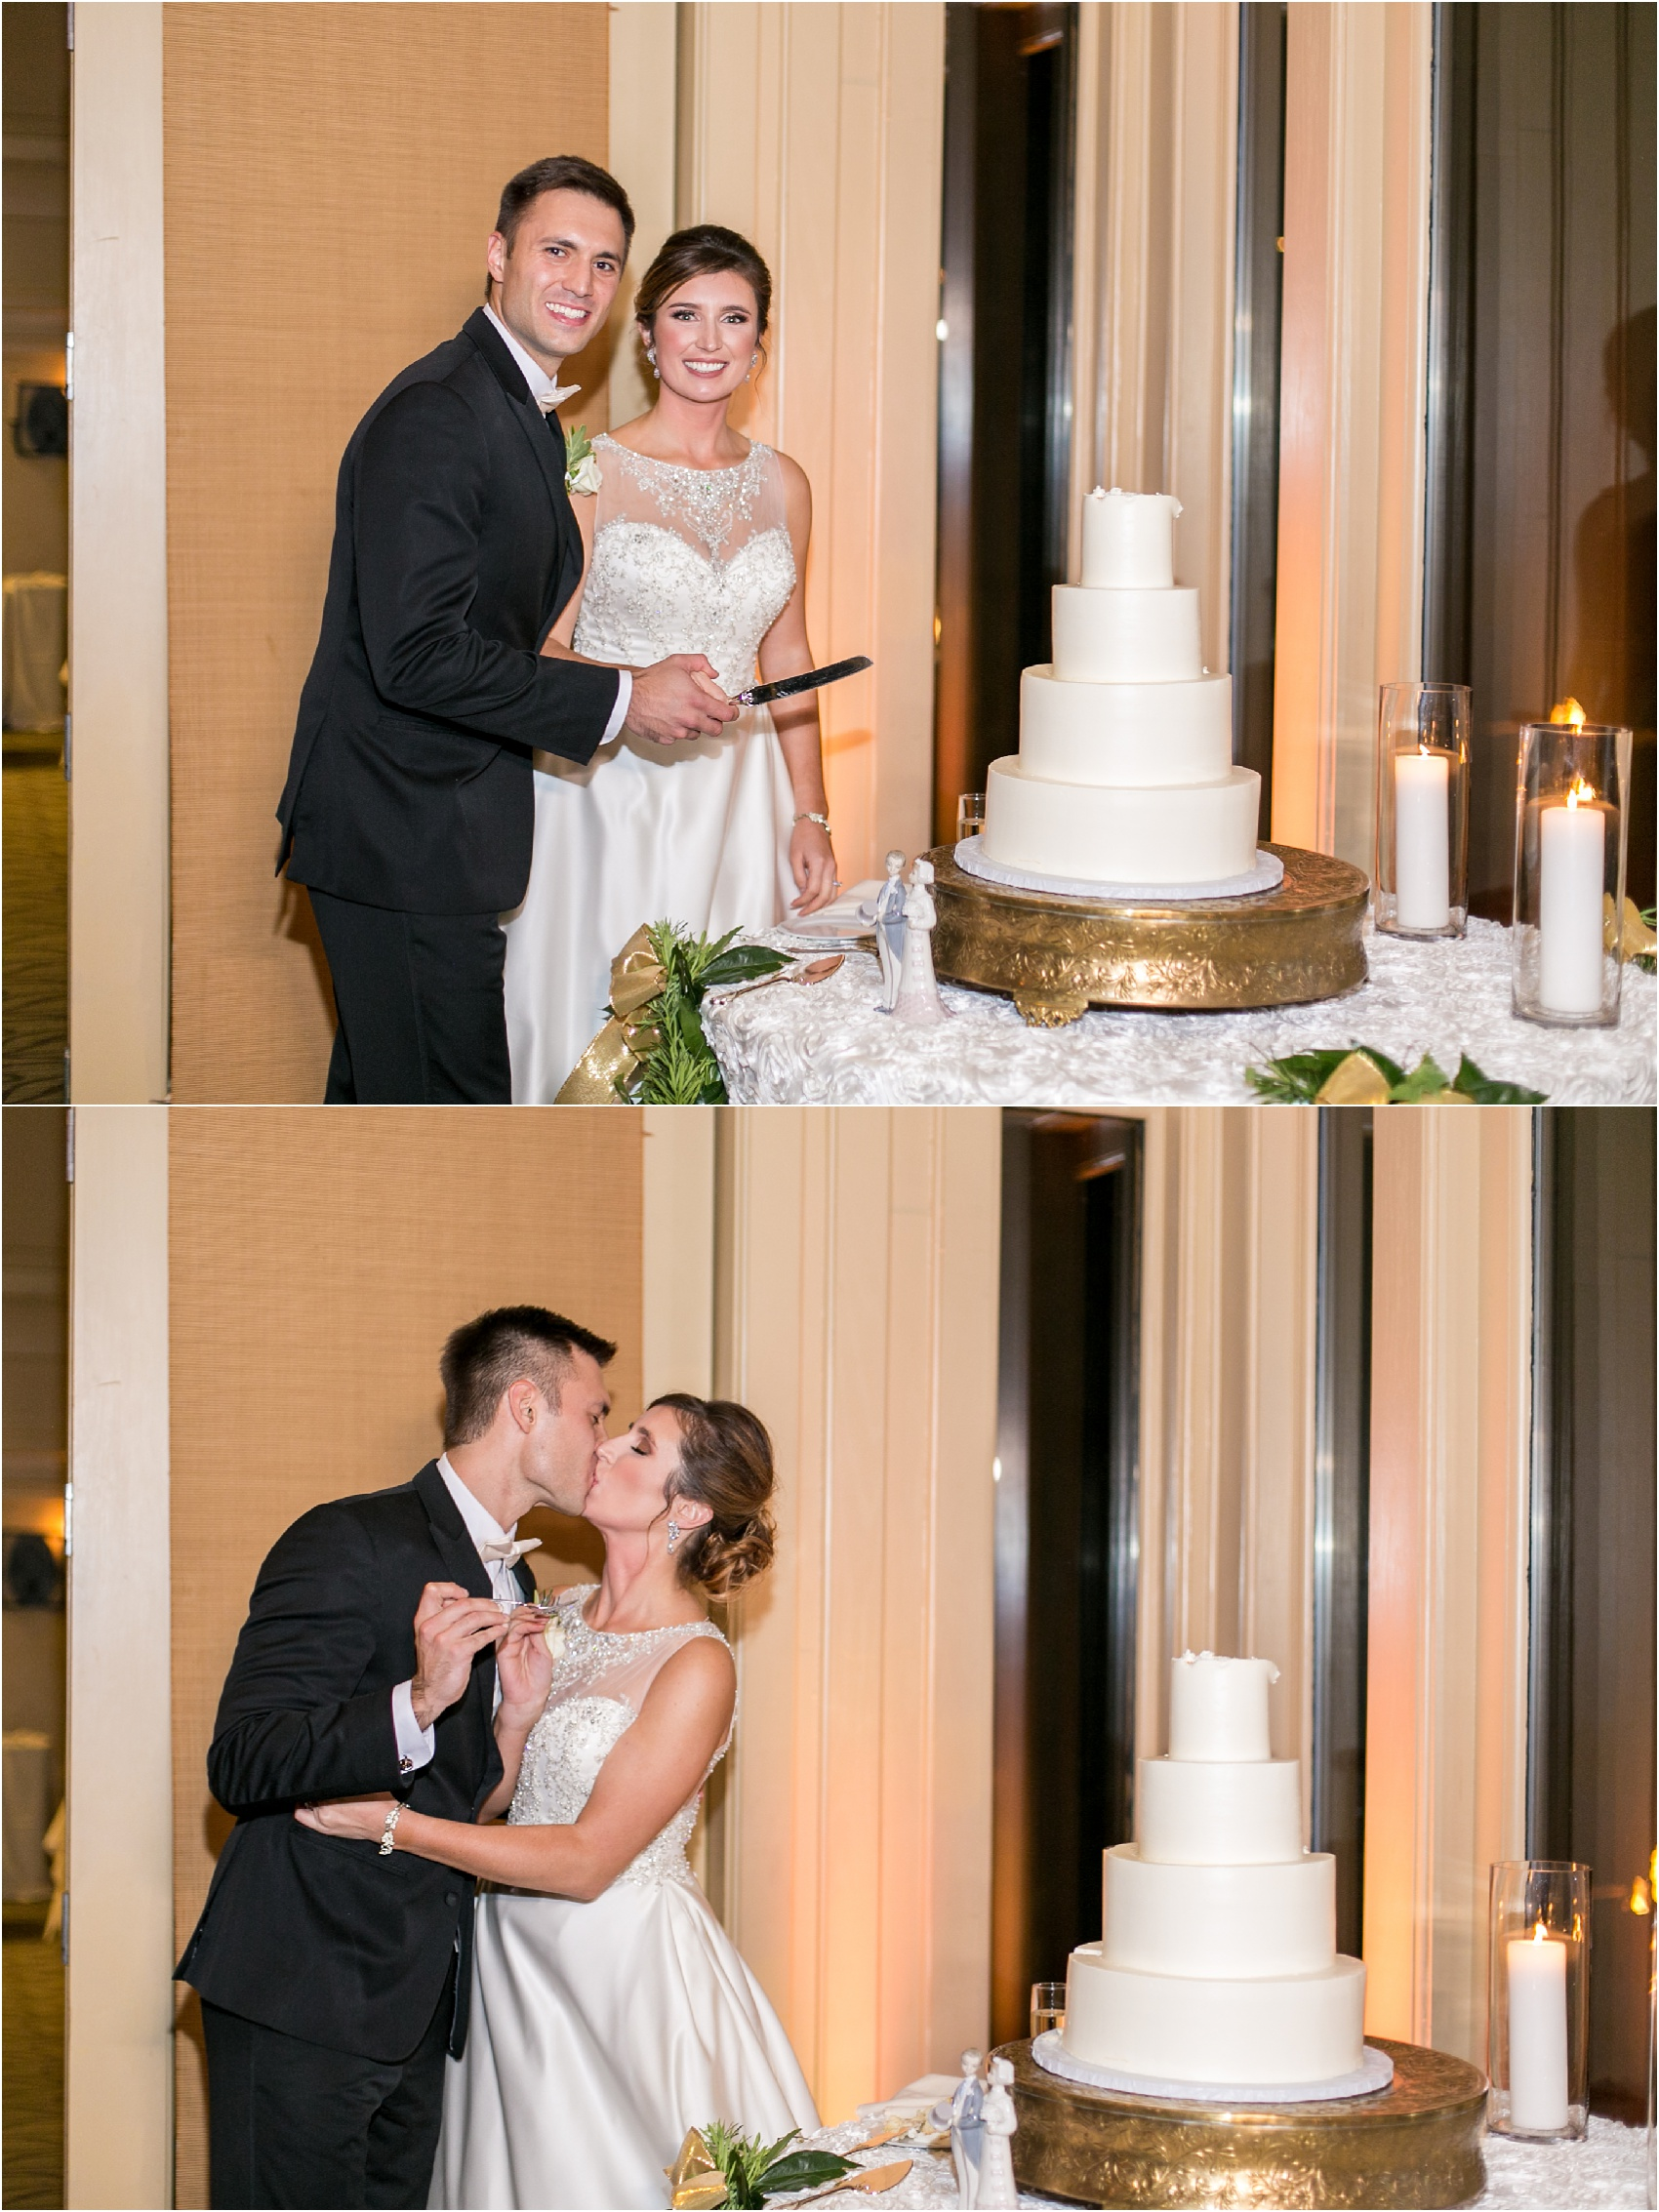 Savannah Eve Photography- Bottiglion-Scope Wedding- Sneak Peek-97.jpg